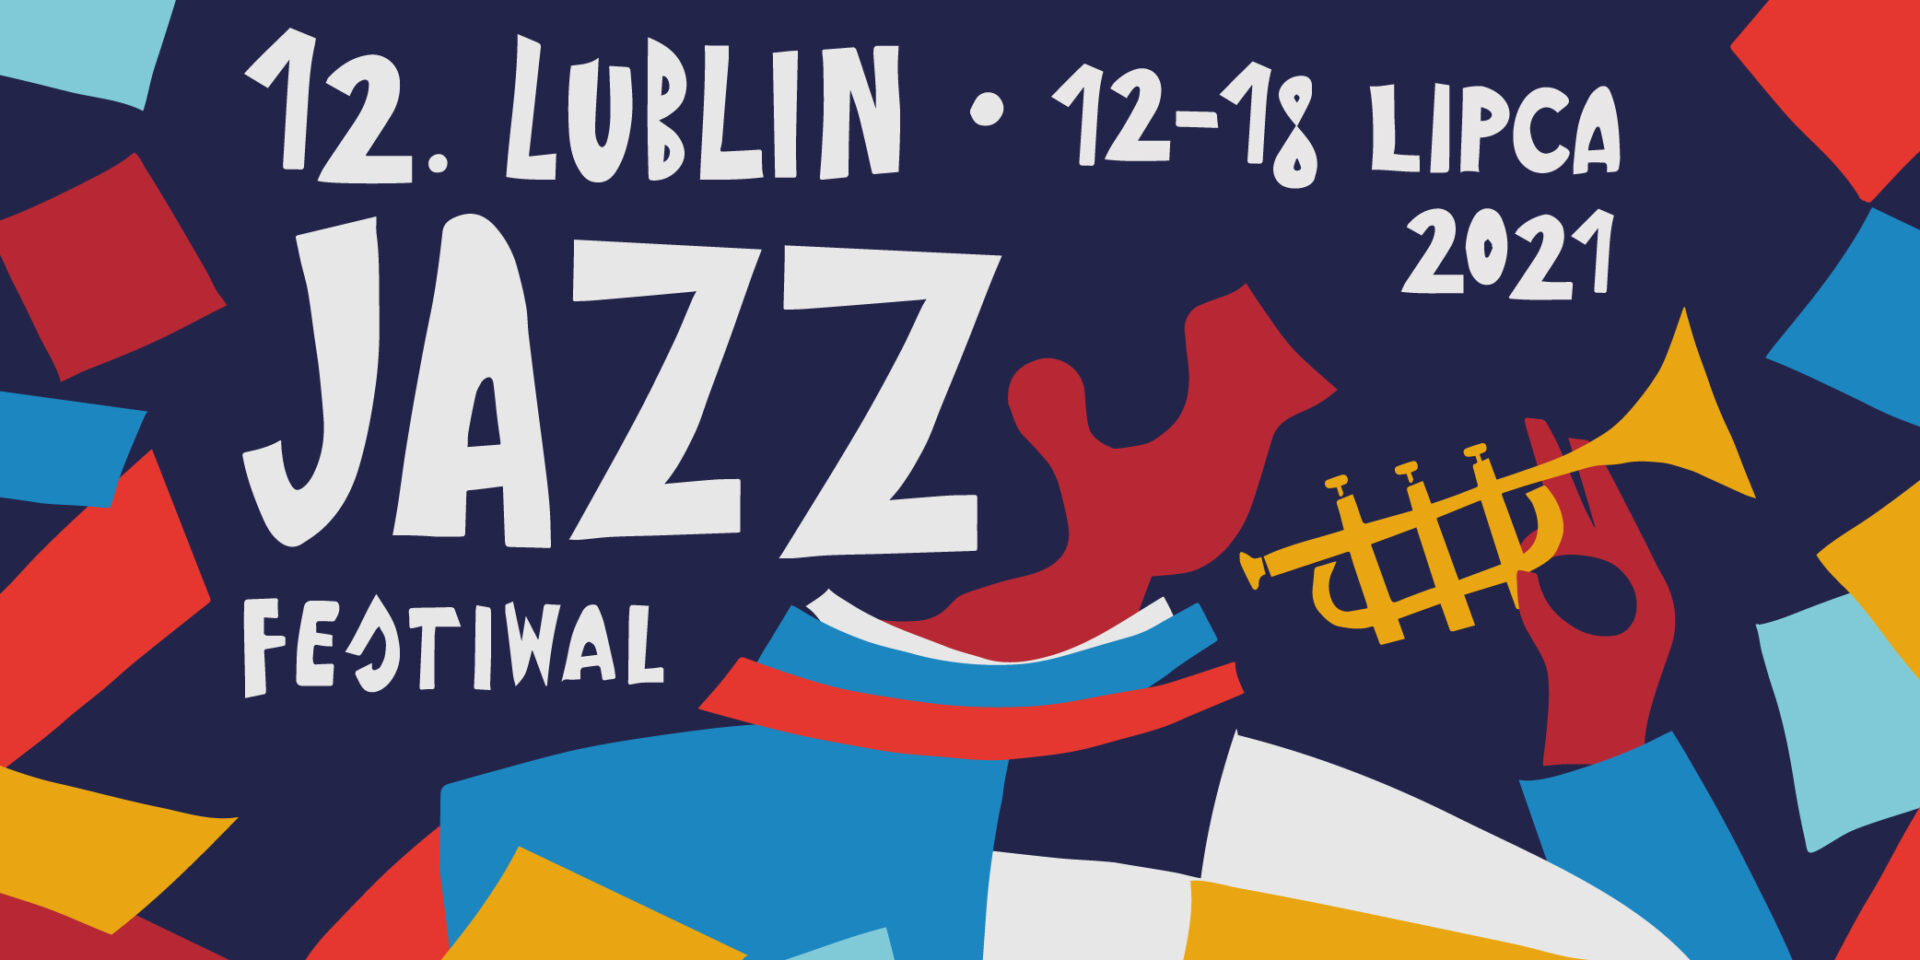 The new date of the 12th Lublin Jazz Festival